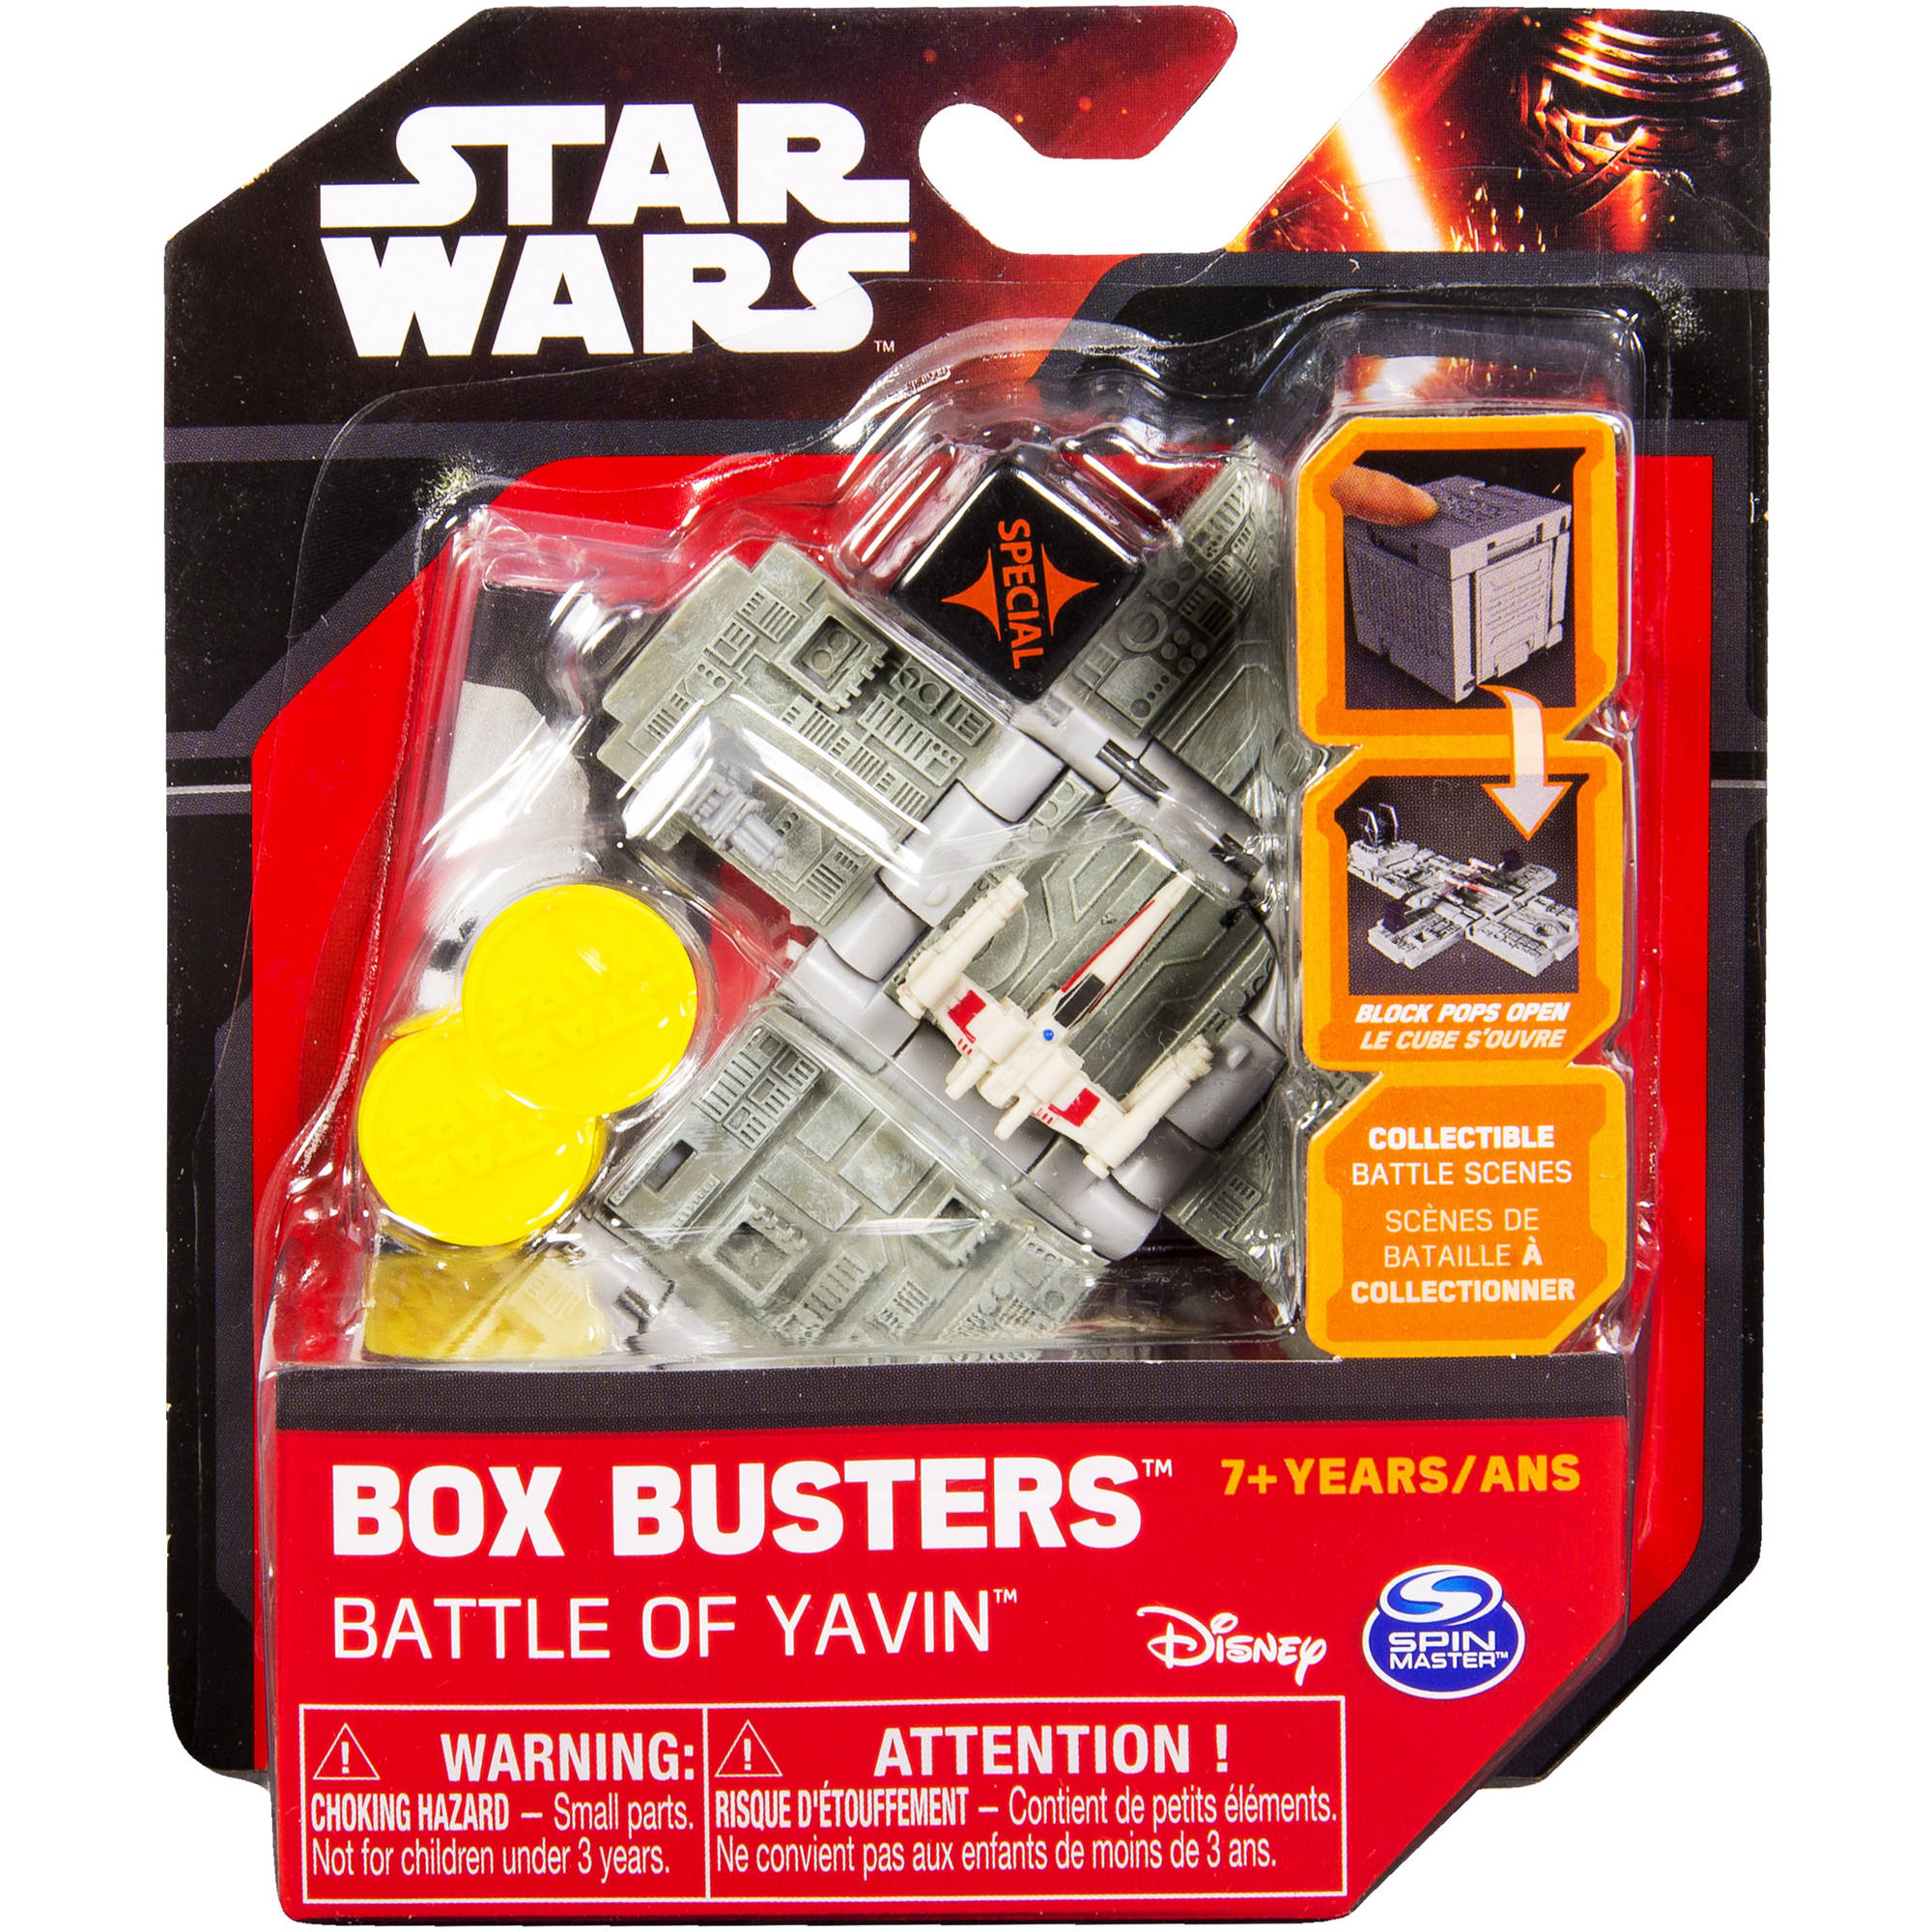 Star Wars Box Busters Battle of Yavin